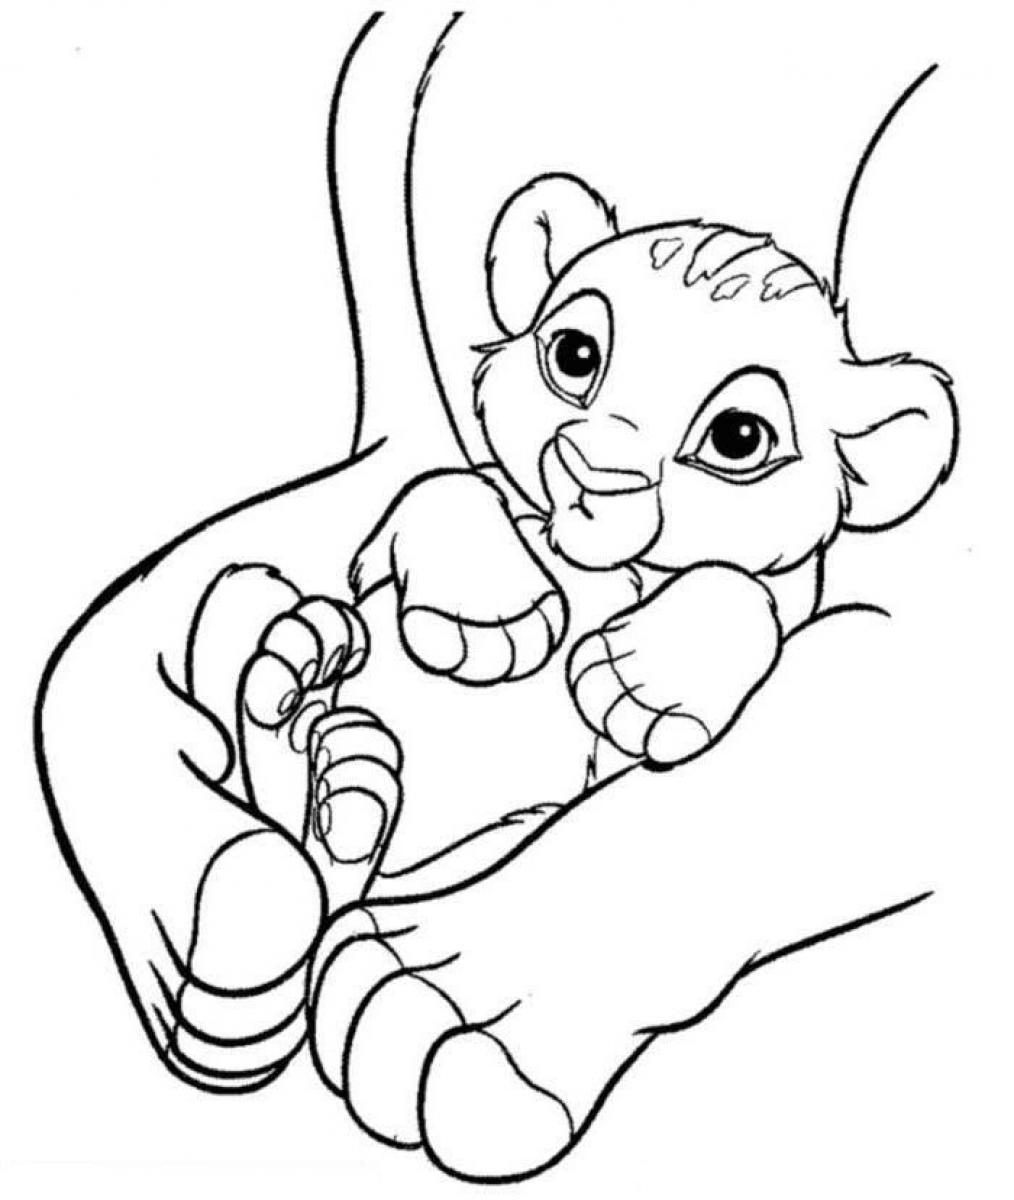 free coloring pages of lions - photo#42